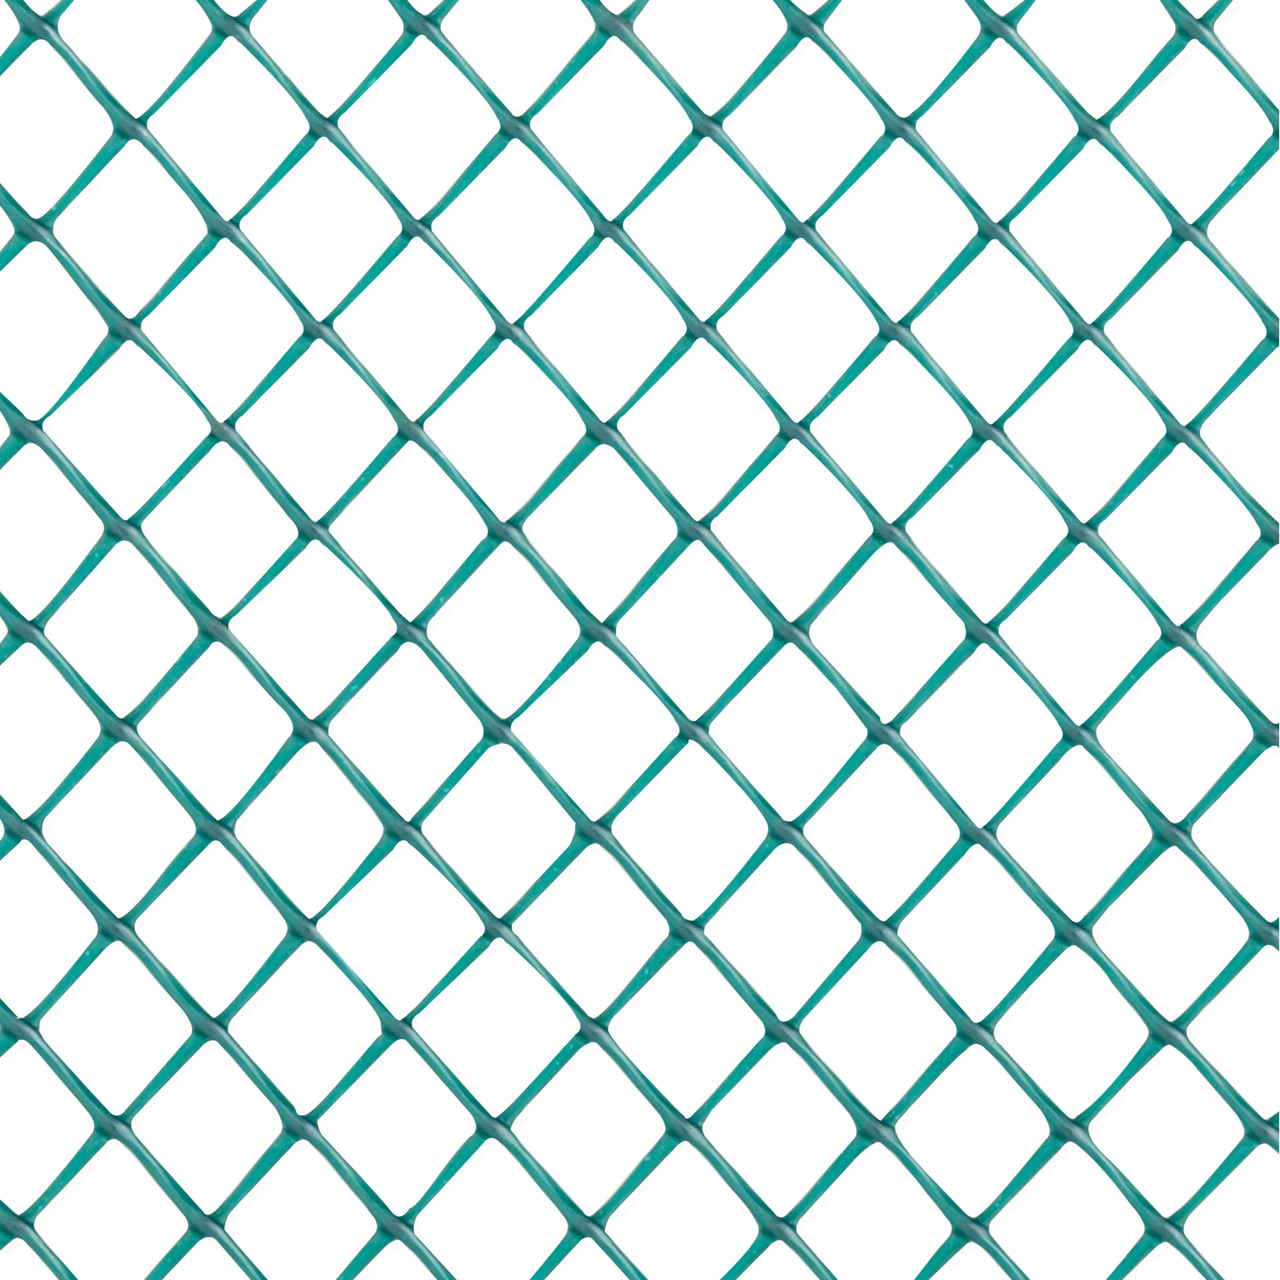 Green Diamond Plastic Poultry Netting 2 ft. x 25 ft. & 3/4\